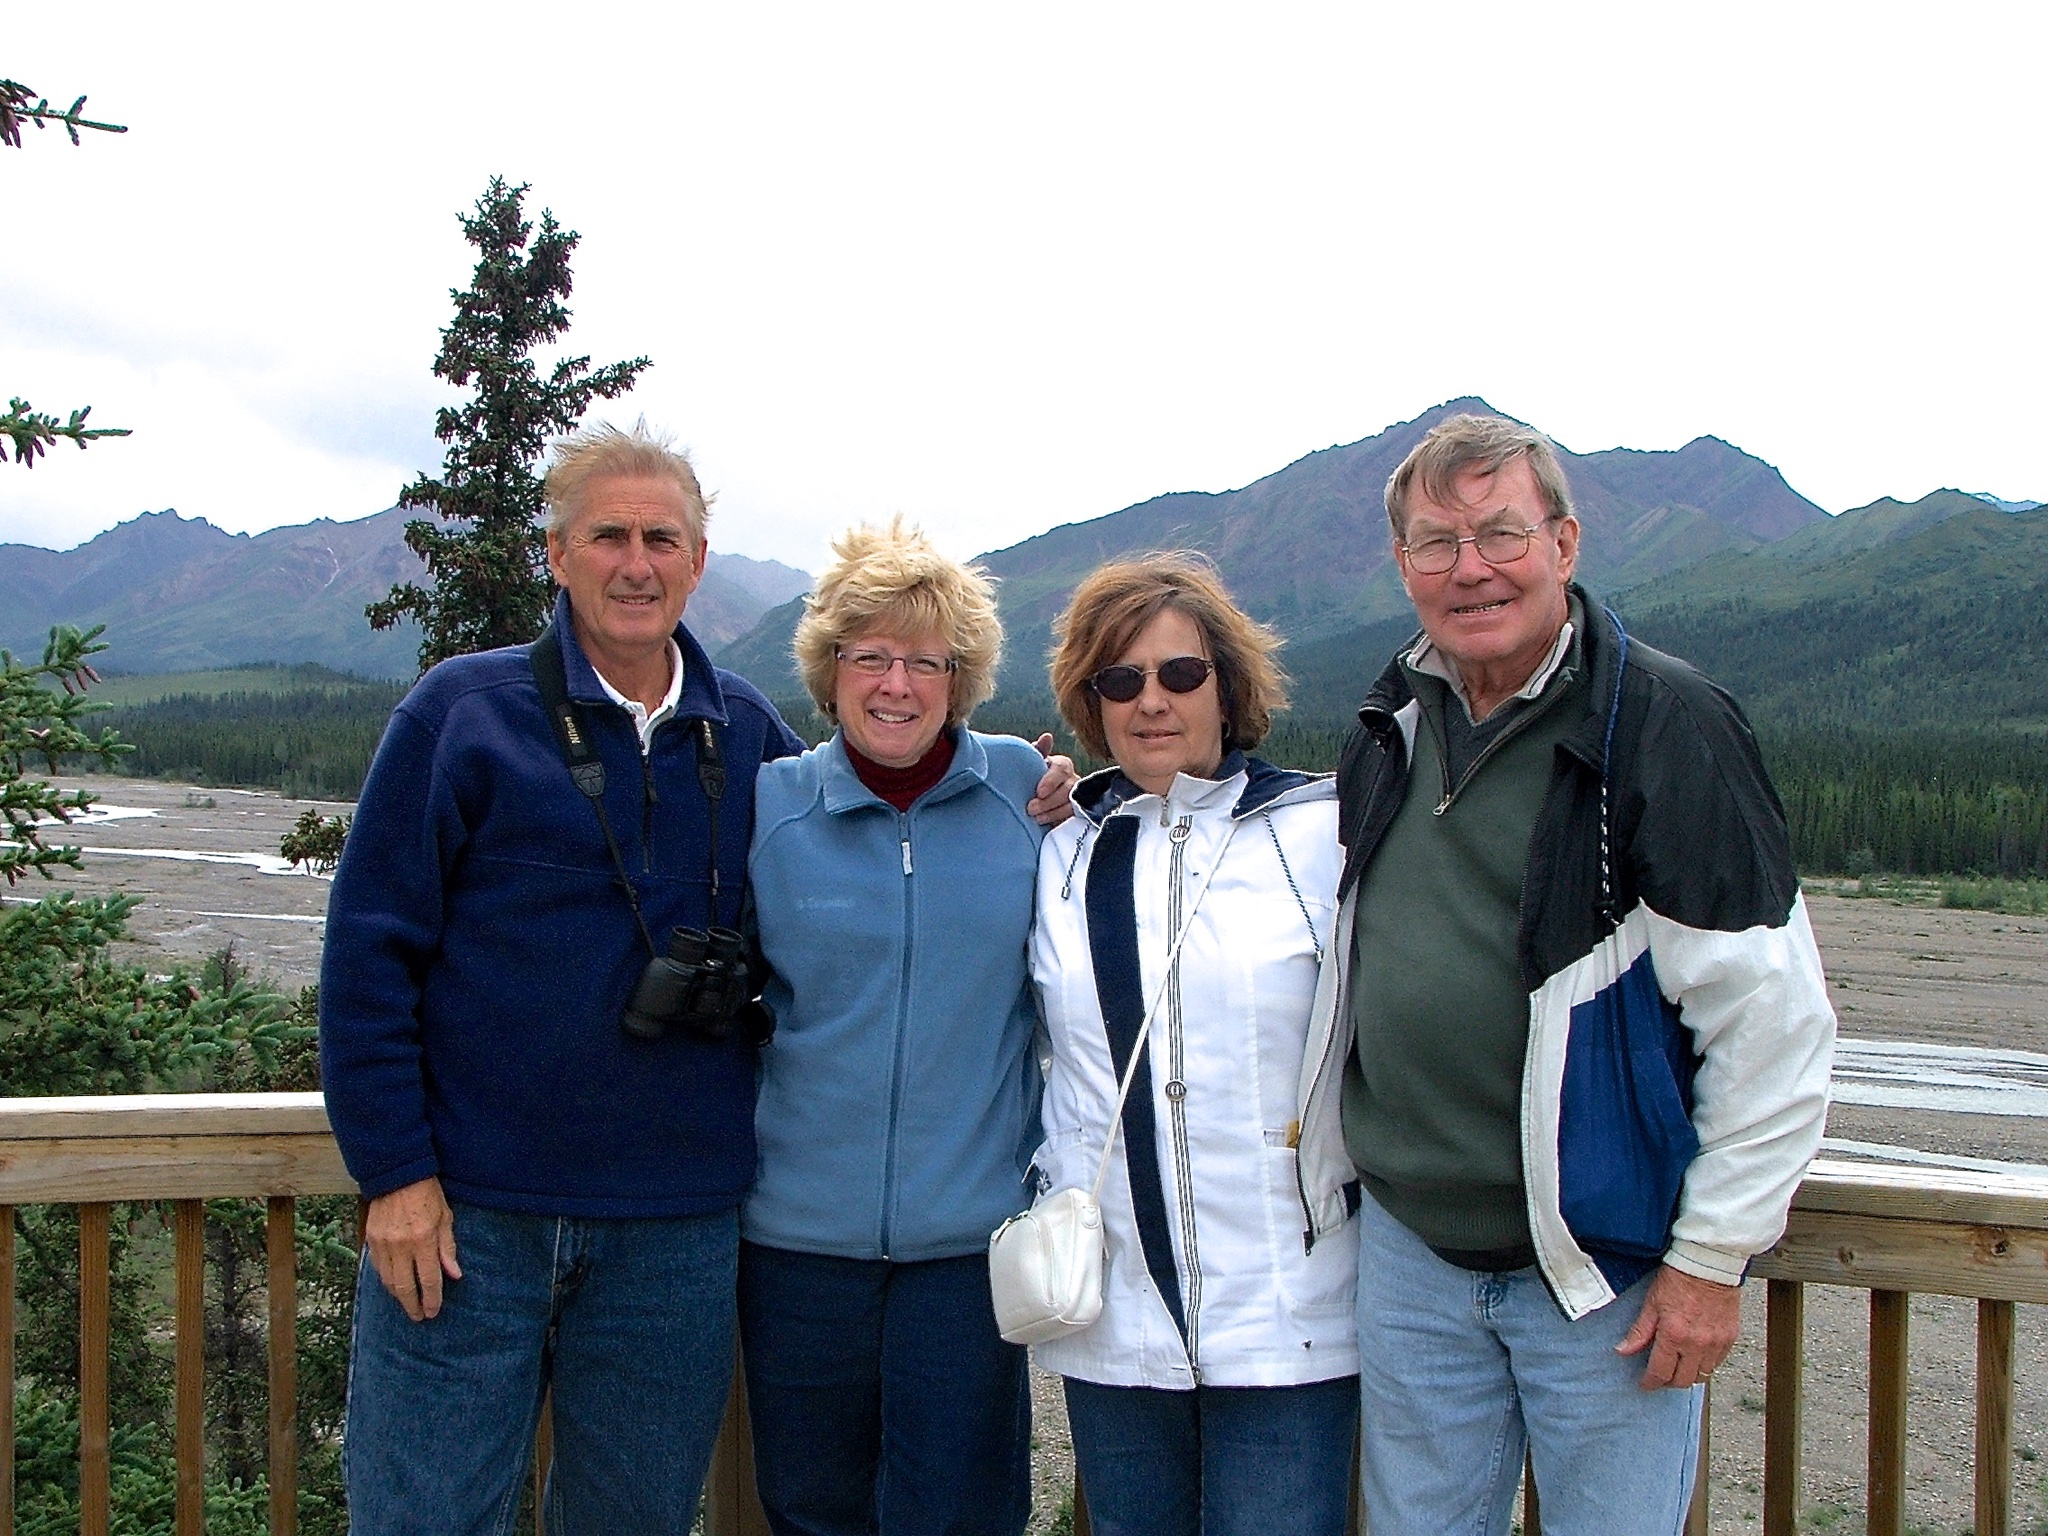 ALASKA - Only one of many wonderful times spent together. Sadly missed. Much loved! More brother than brother-in law!